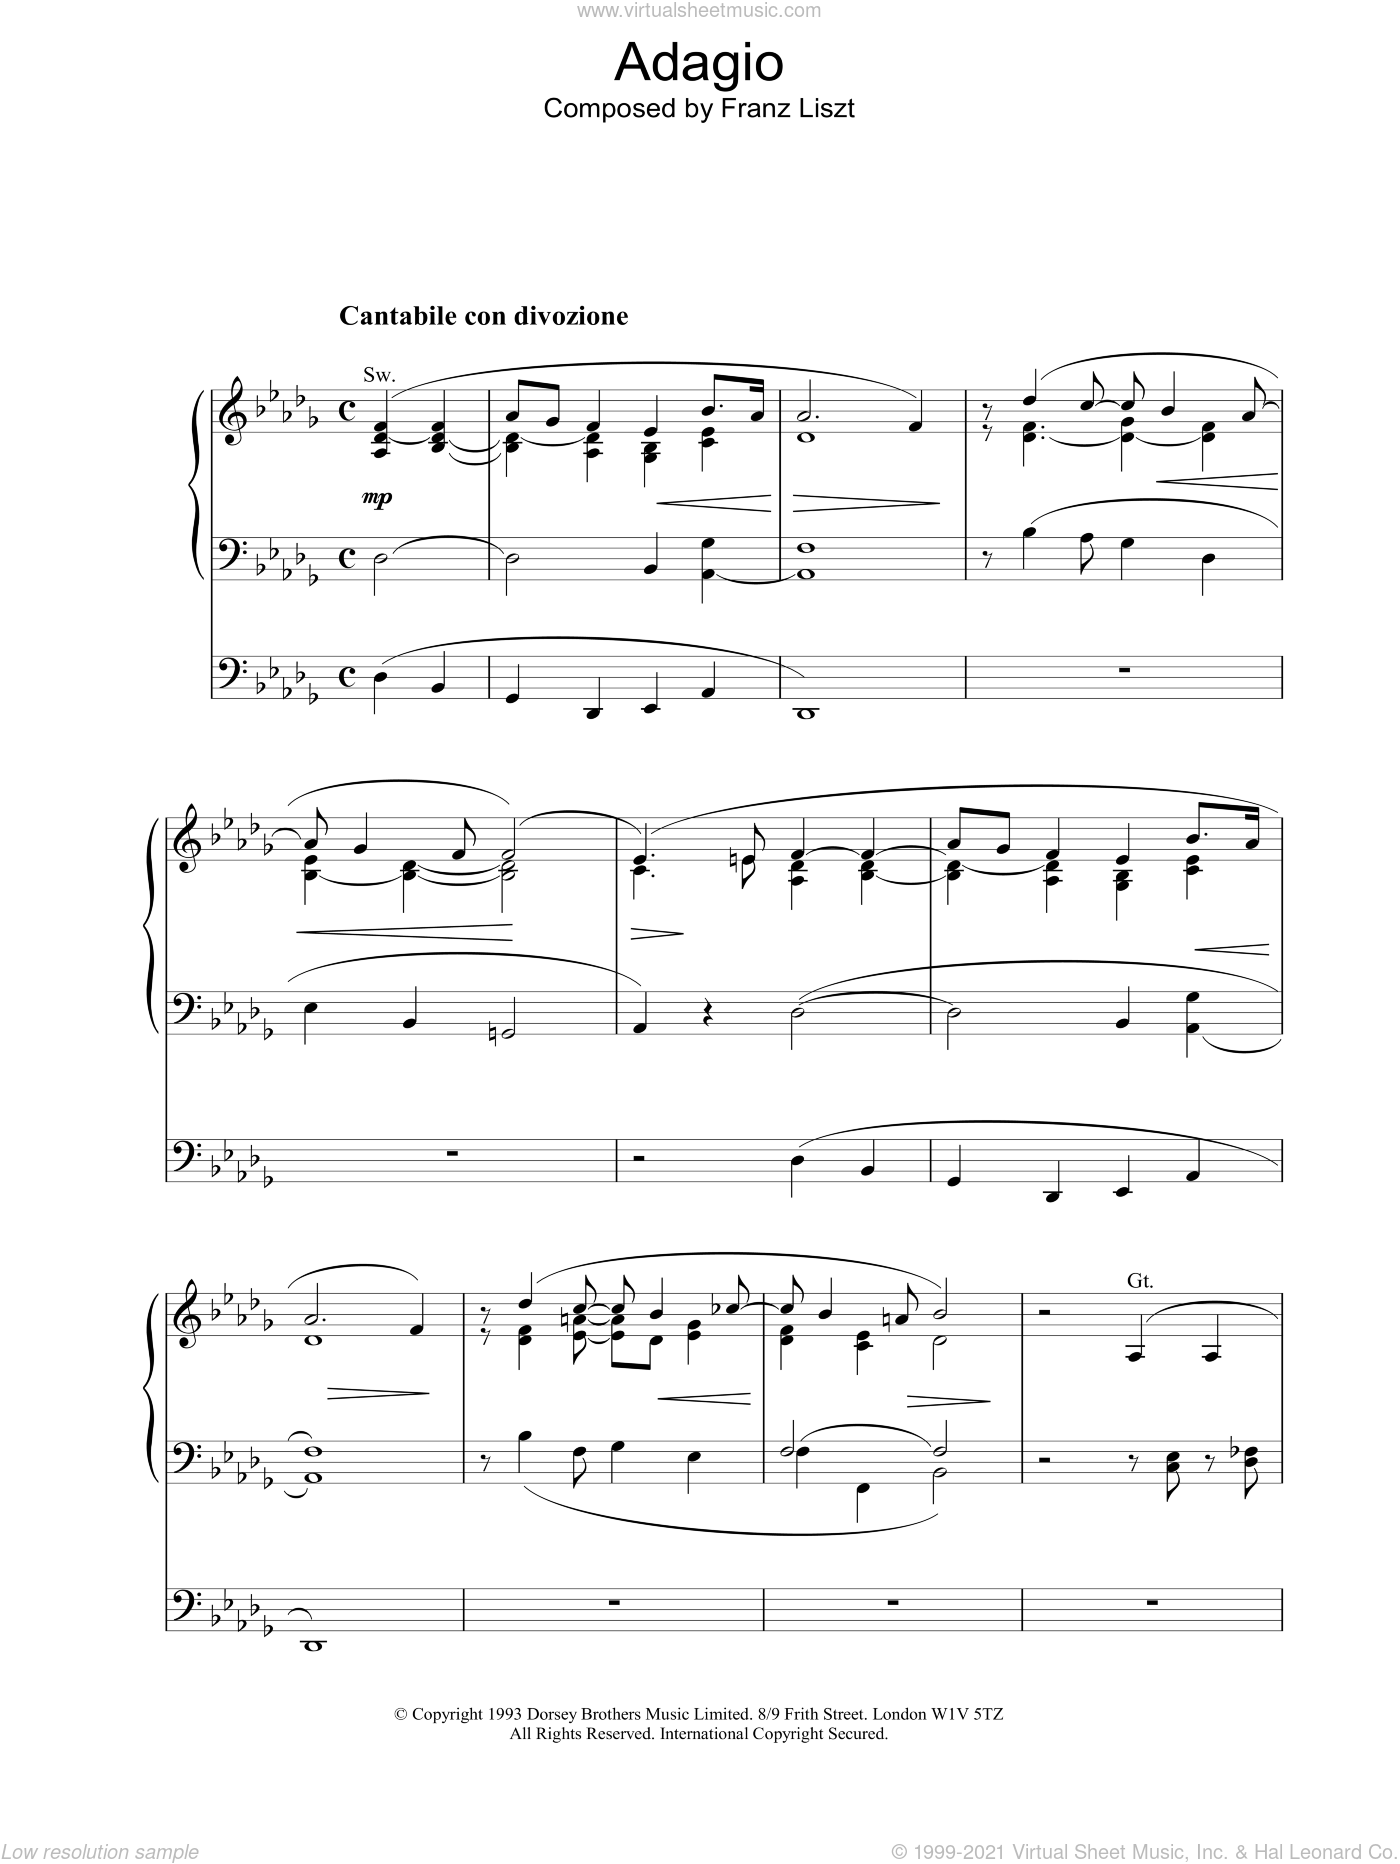 Adagio sheet music for organ by Franz Liszt